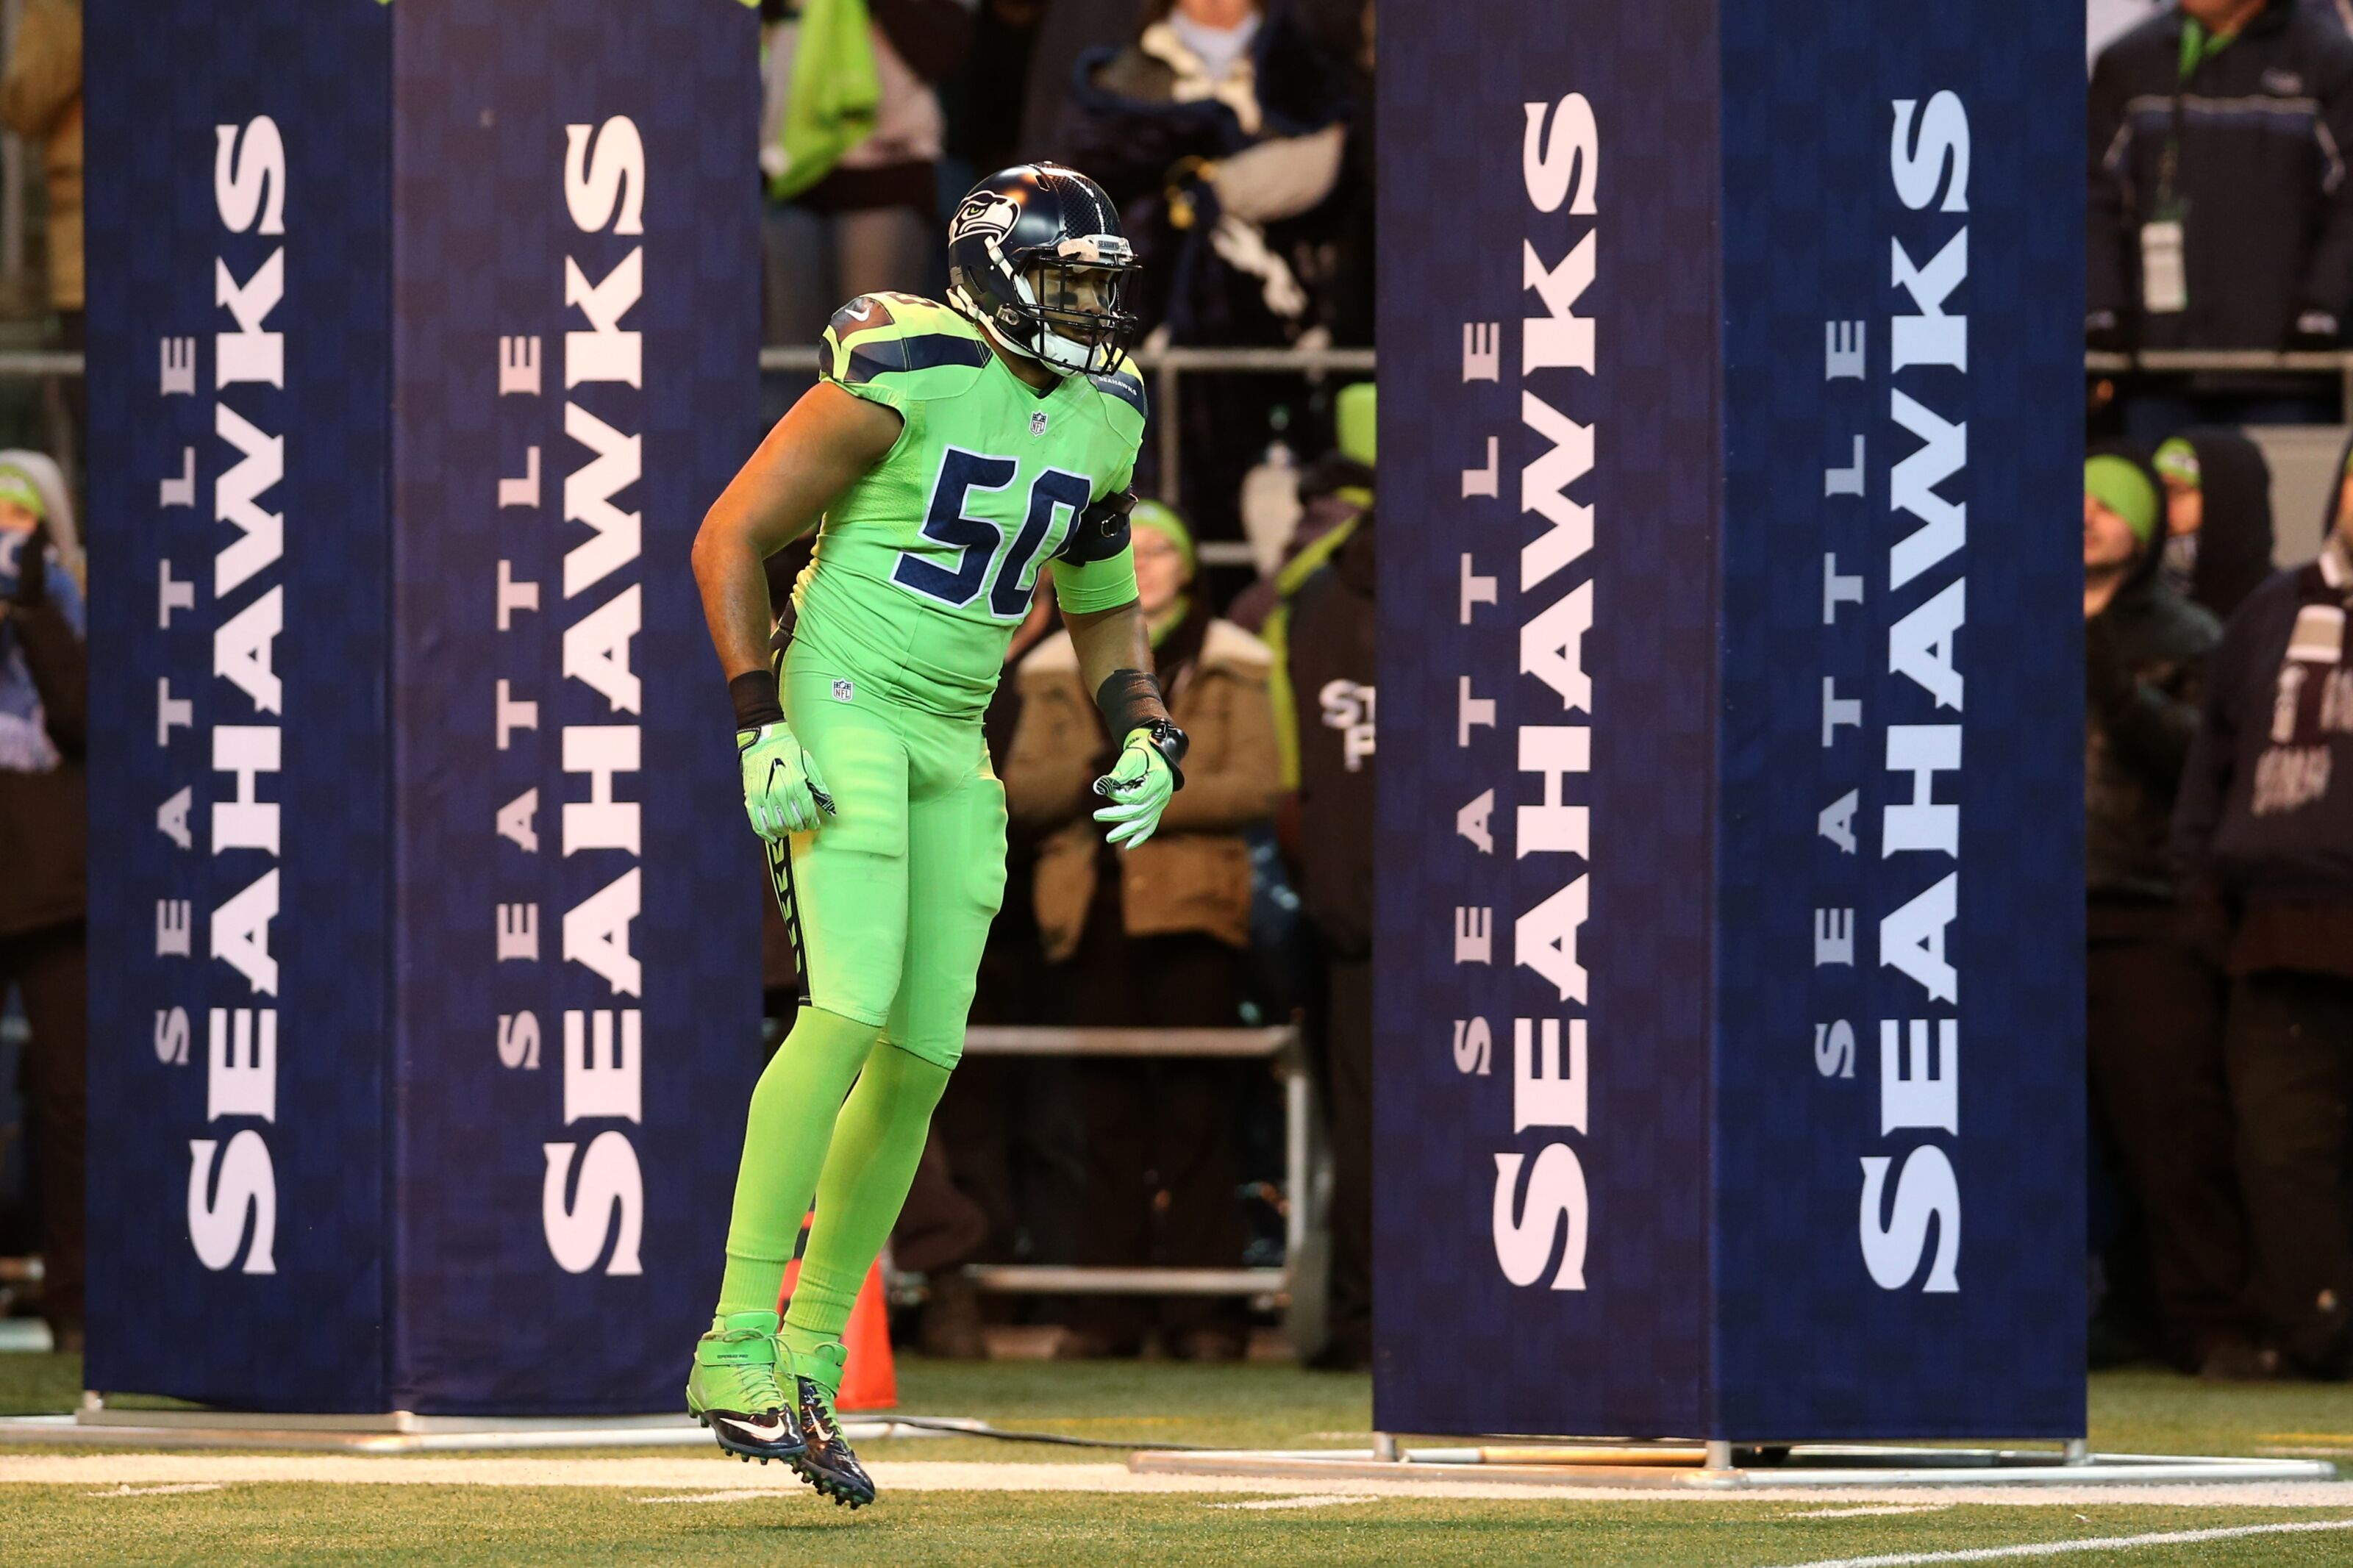 SEATTLE, WA - DECEMBER 15: K.J. Wright #50 of the Seattle Seahawks is introduced before the game against the Los Angeles Rams at CenturyLink Field on December 15, 2016 in Seattle, Washington. The Seahawks defeated the Rams 24-3. (Photo by Rob Leiter via Getty Images)